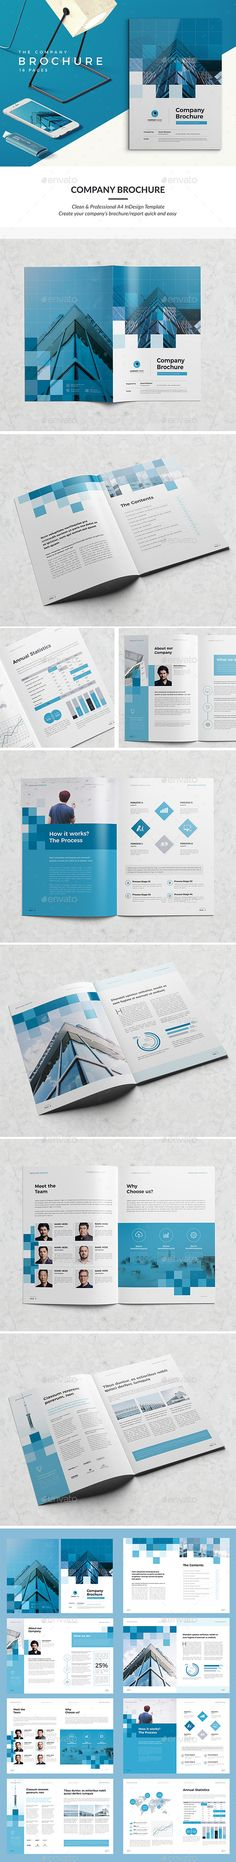 Modern Company Brochure 16 Pages — InDesign INDD #professional #corporate • Download ➝ https://graphicriver.net/item/modern-company-brochure-16-pages/20346788?ref=pxcr